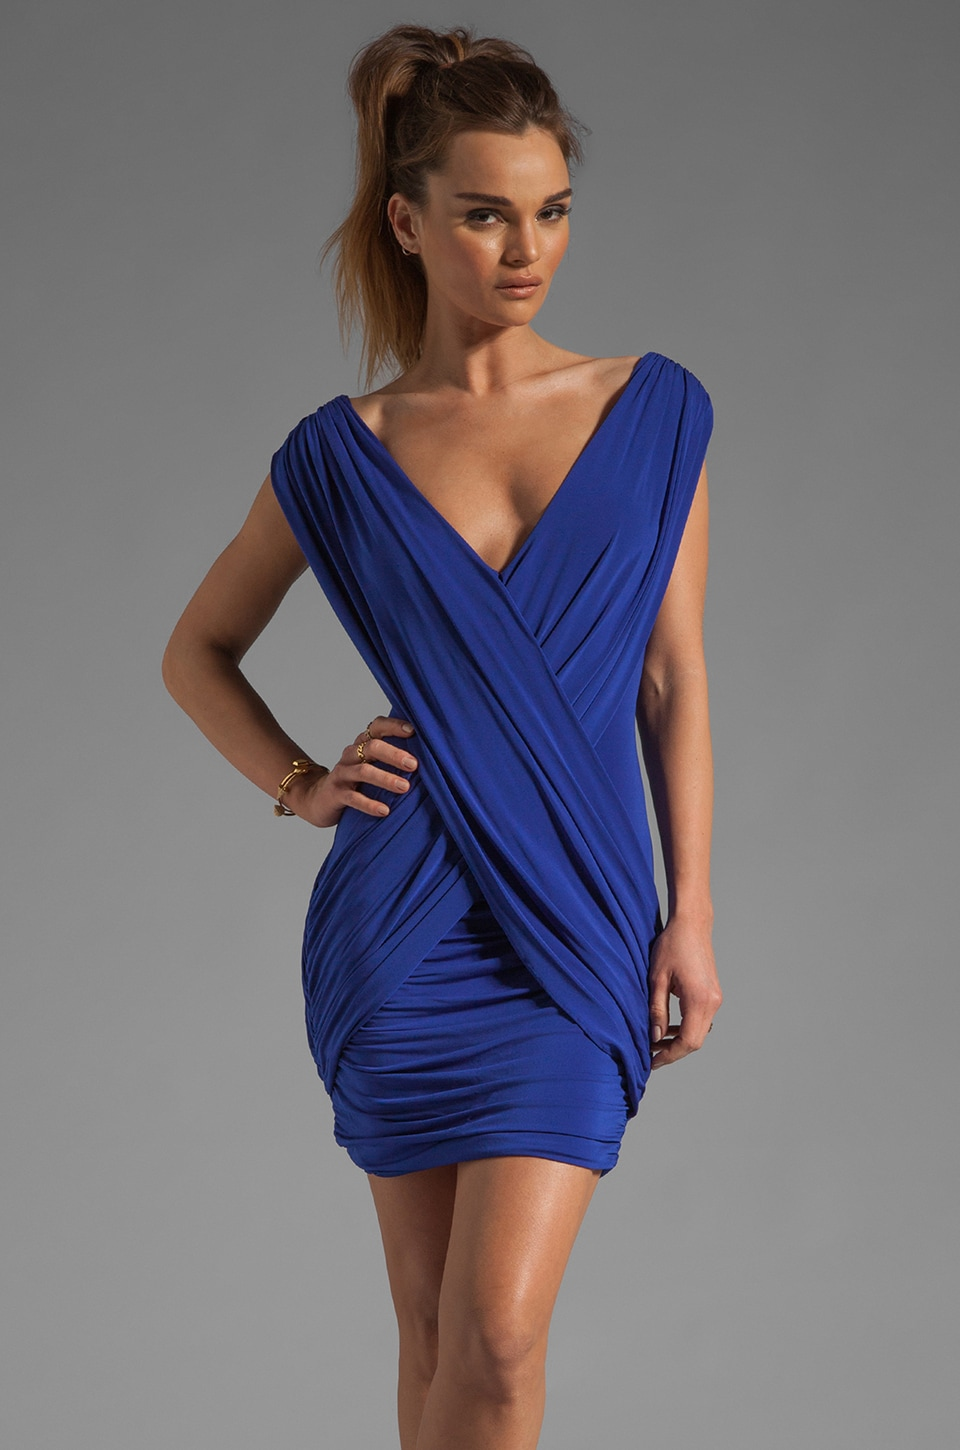 BCBGMAXAZRIA Mini Dress in Royal Blue